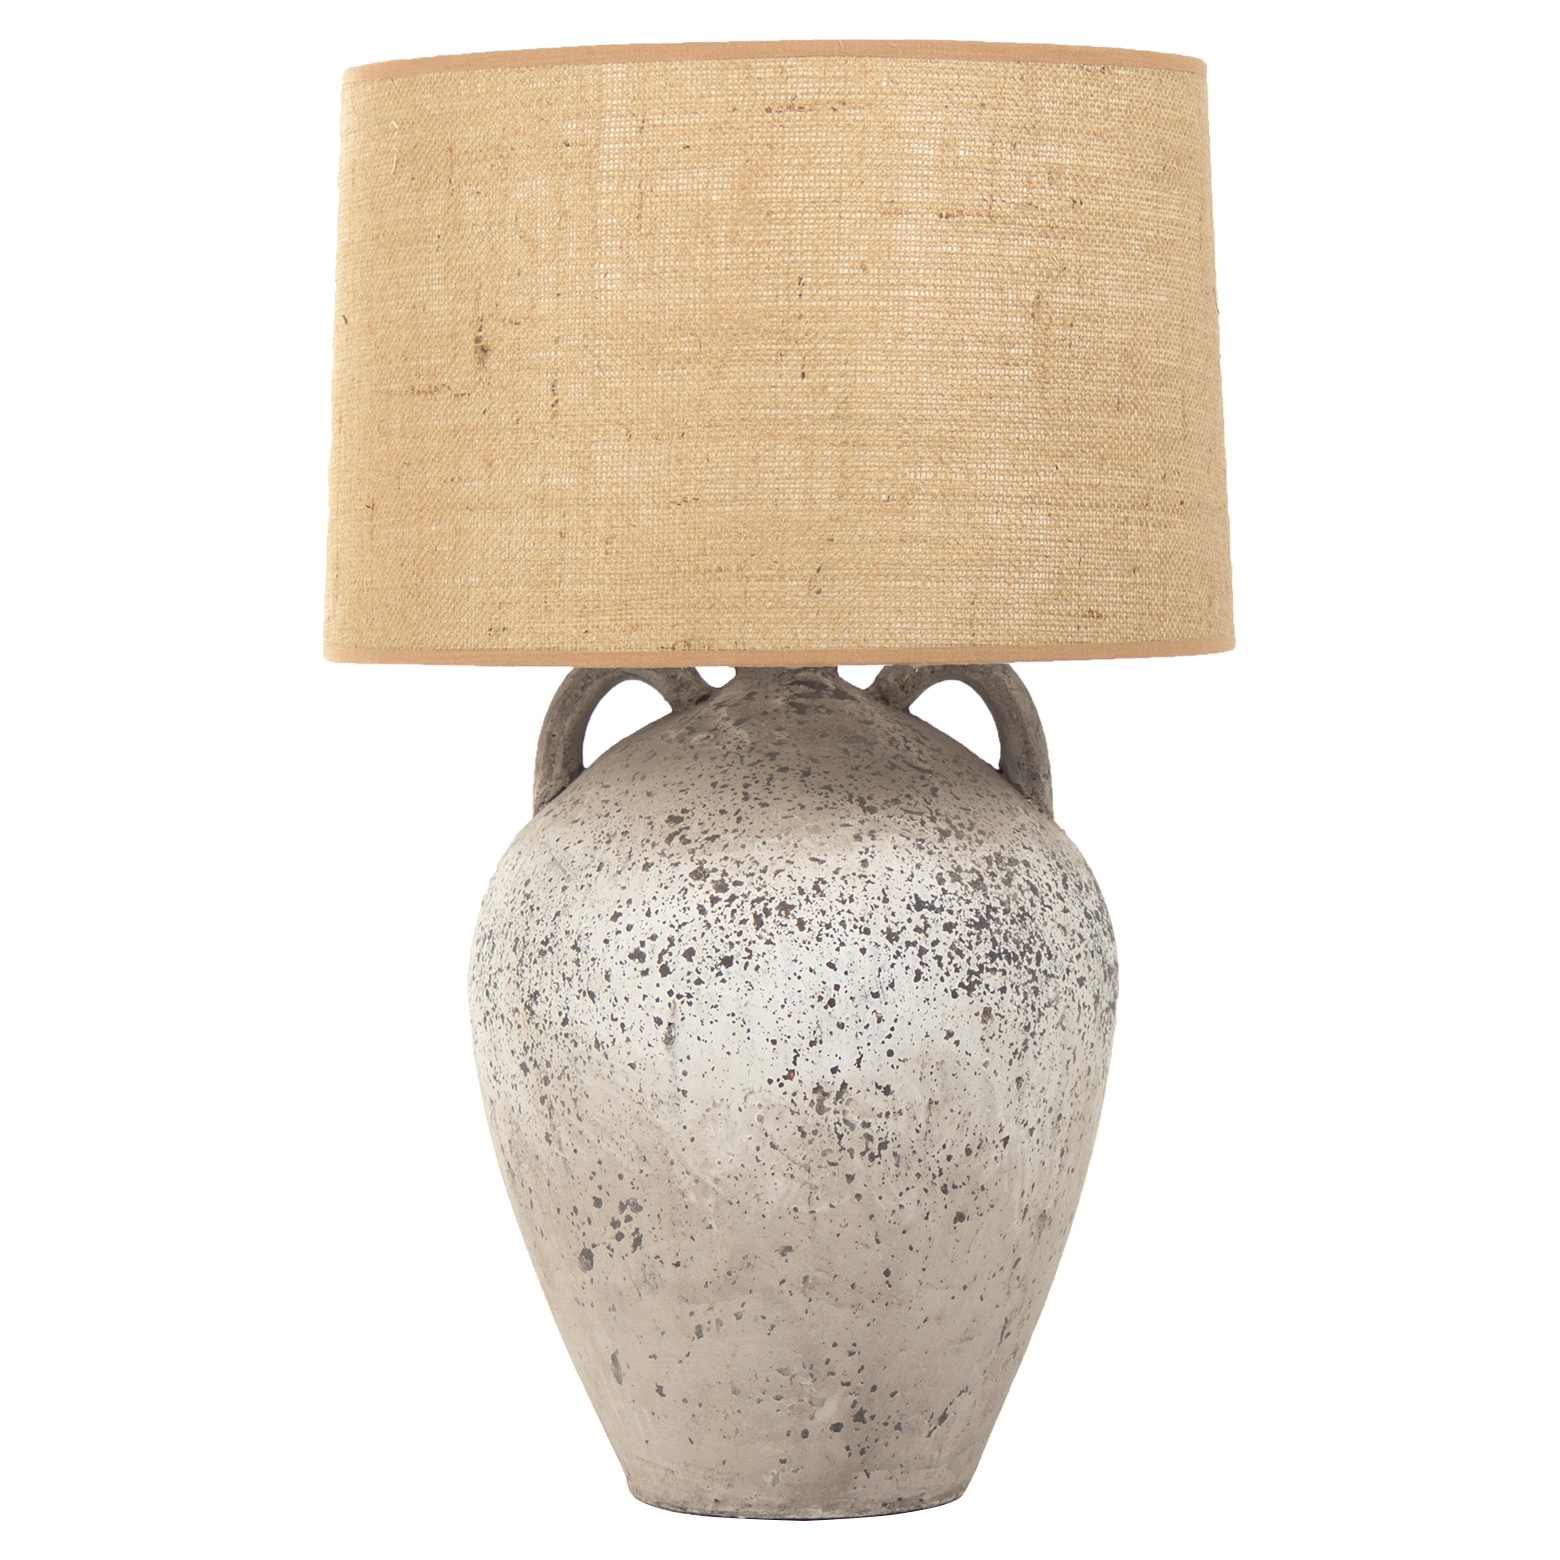 Table lamps kathy kuo home merline french country burlap shade stoneware jug lamp mozeypictures Images